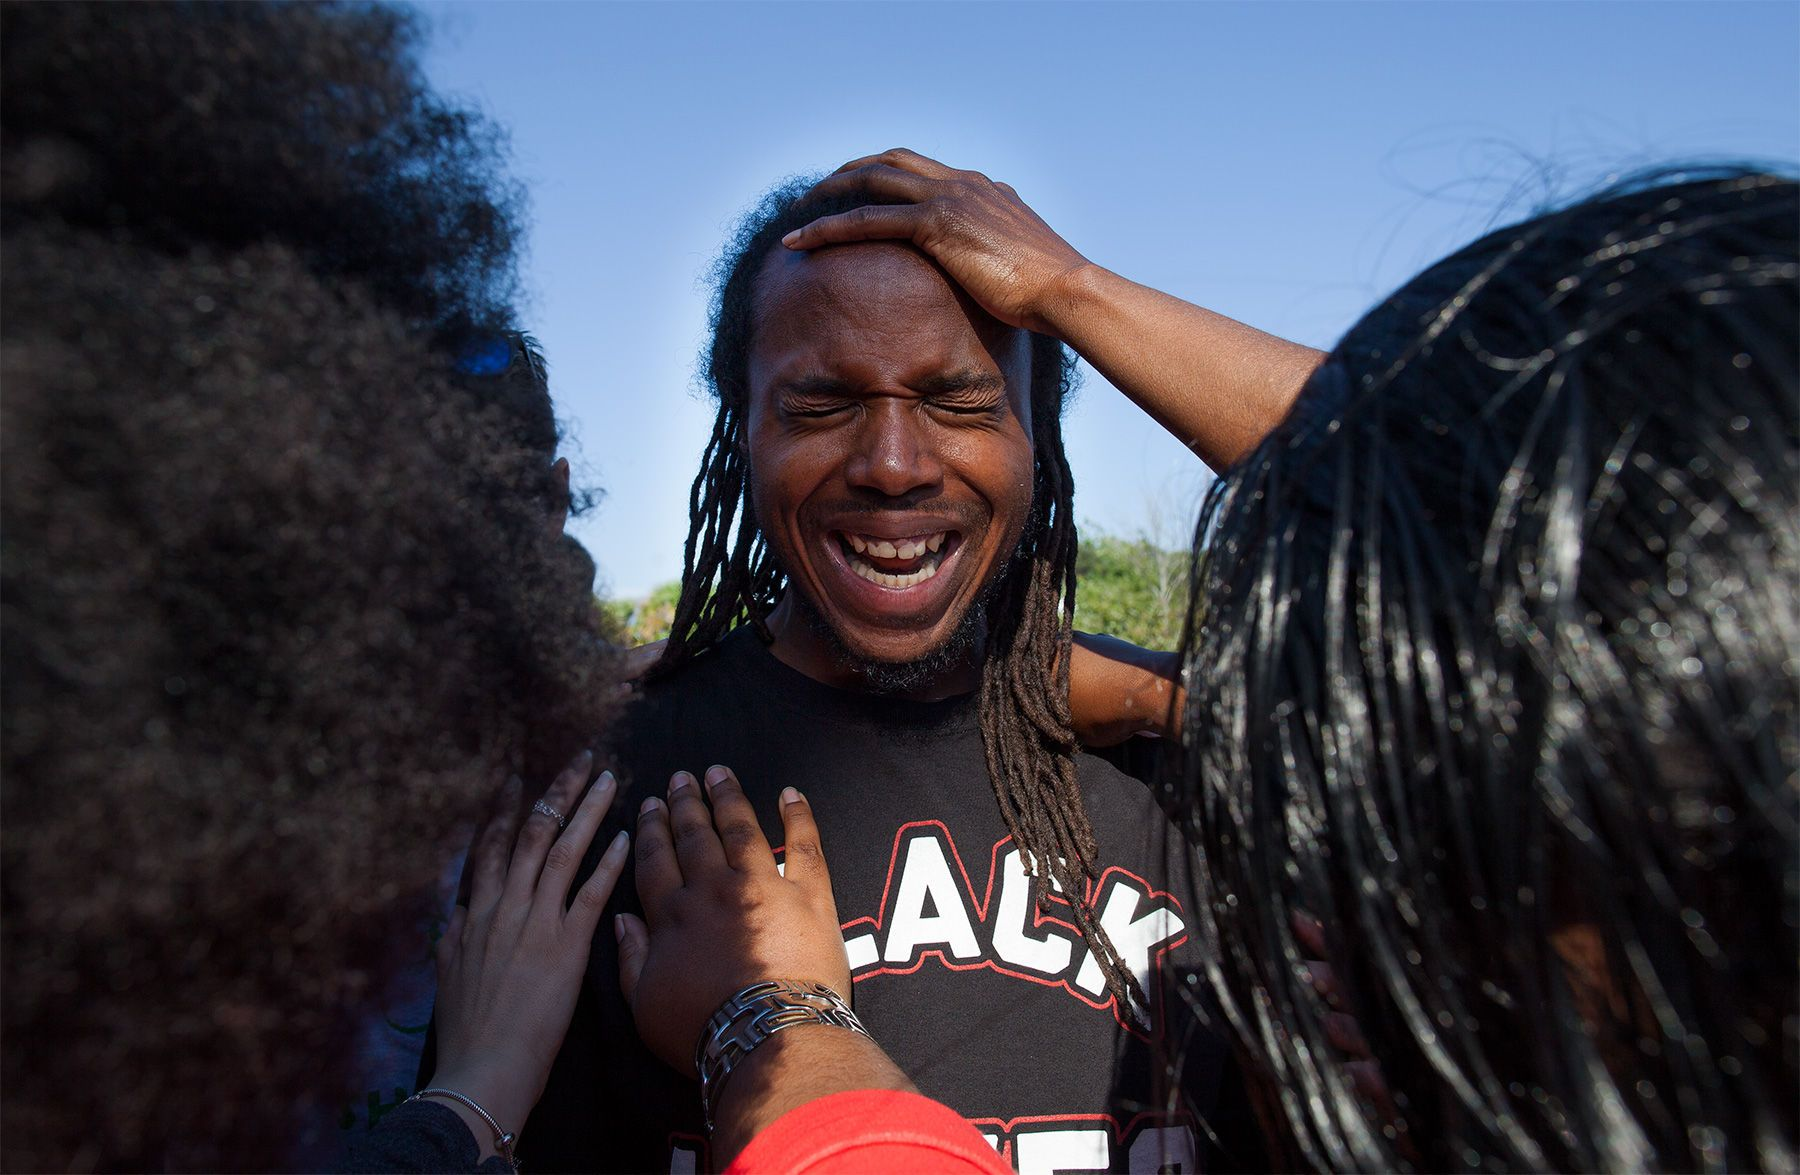 Muhiyidin Moye D'Baha of the Black Lives Matter movement, leads his group in prayer before a press conference demanding a citizen review board in North Charleston, South Carolina April 9, 2015. For the dozens of protesters who descended on the working-class South Carolina city of North Charleston on Wednesday, a bystander's video of a white police officer gunning down Scott was long-awaited confirmation of what many residents have been saying for years. Activists said the footage, showing Officer Michael Slager shooting 50-year-old Walter Scott in the back, is chilling evidence of what they portray as {quote}an atmosphere of racism{quote} that allows African-Americans to be targeted in North Charleston and across the state.  REUTERS/Randall Hill